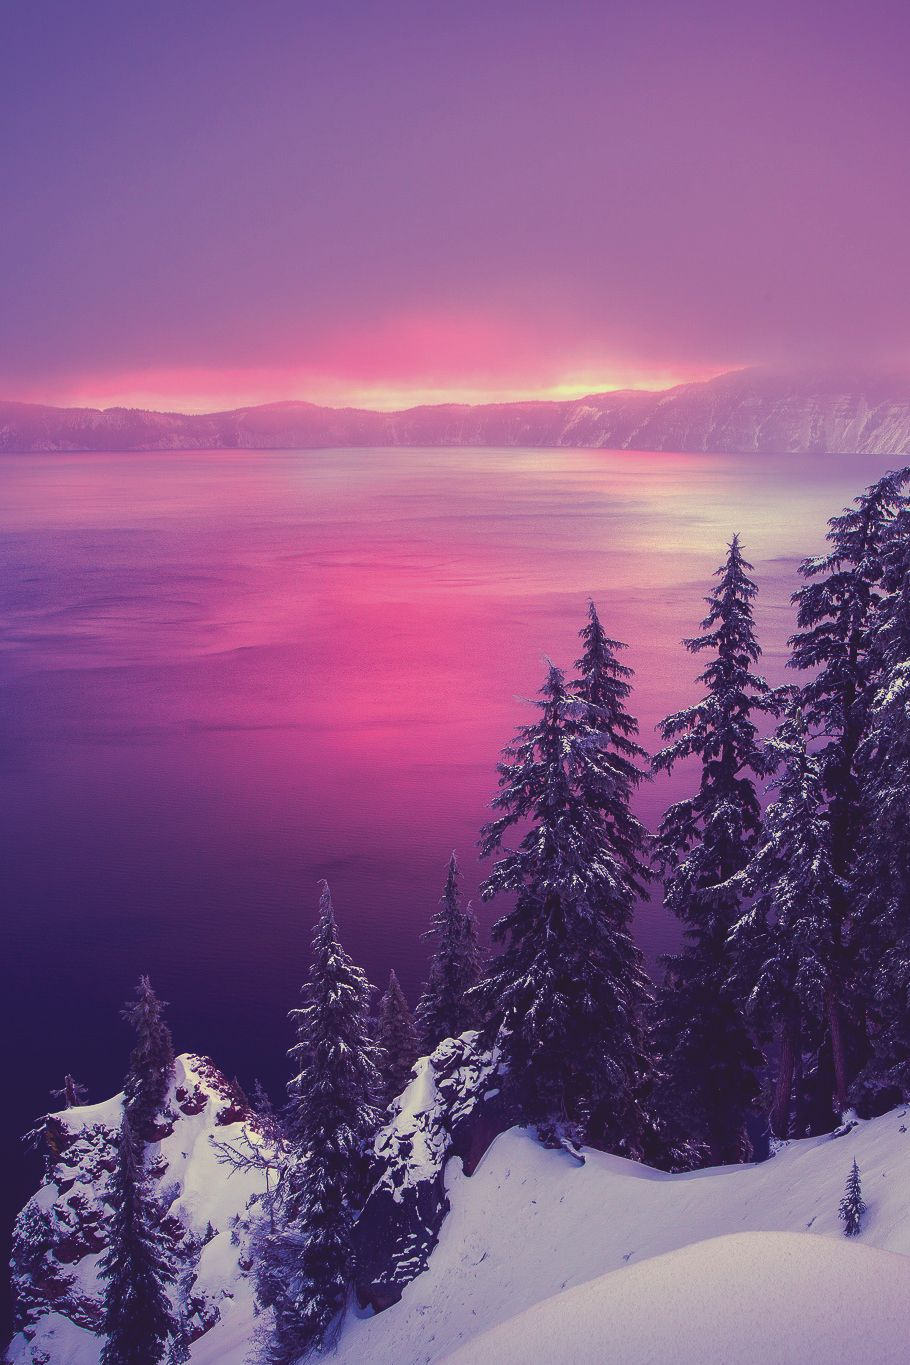 Beautiful Winter Outfit Www Pinterest Com: Winter Sunrise At Crater Lake By David Swindler